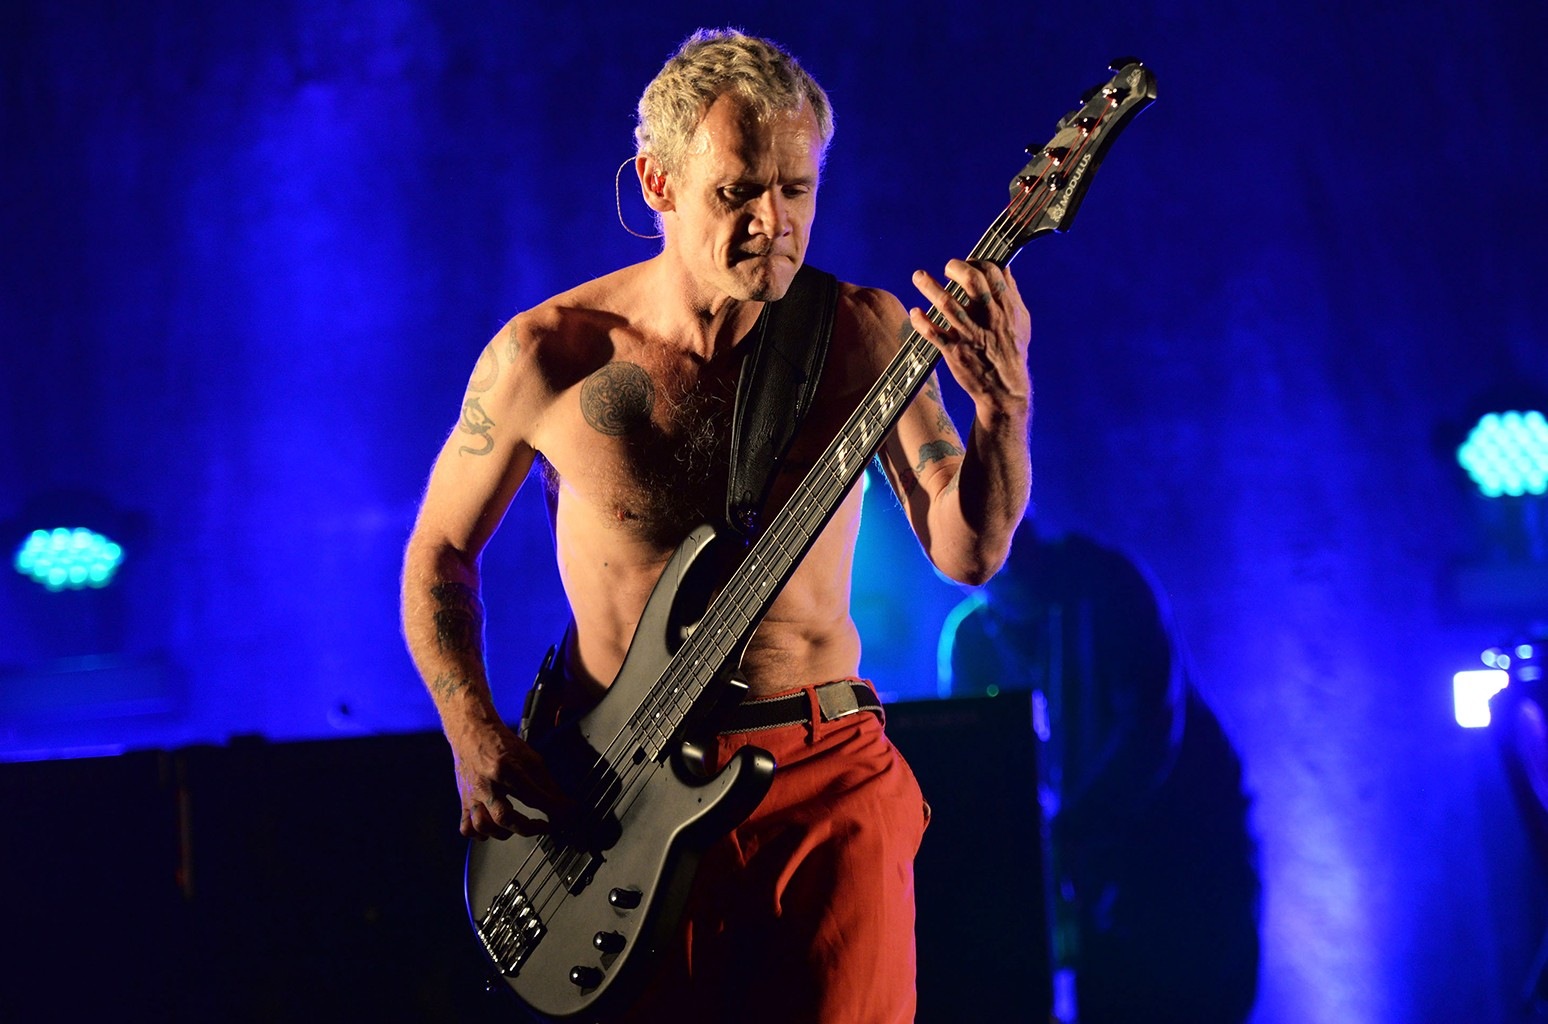 Flea of the Red Hot Chili Peppers performs in 2016